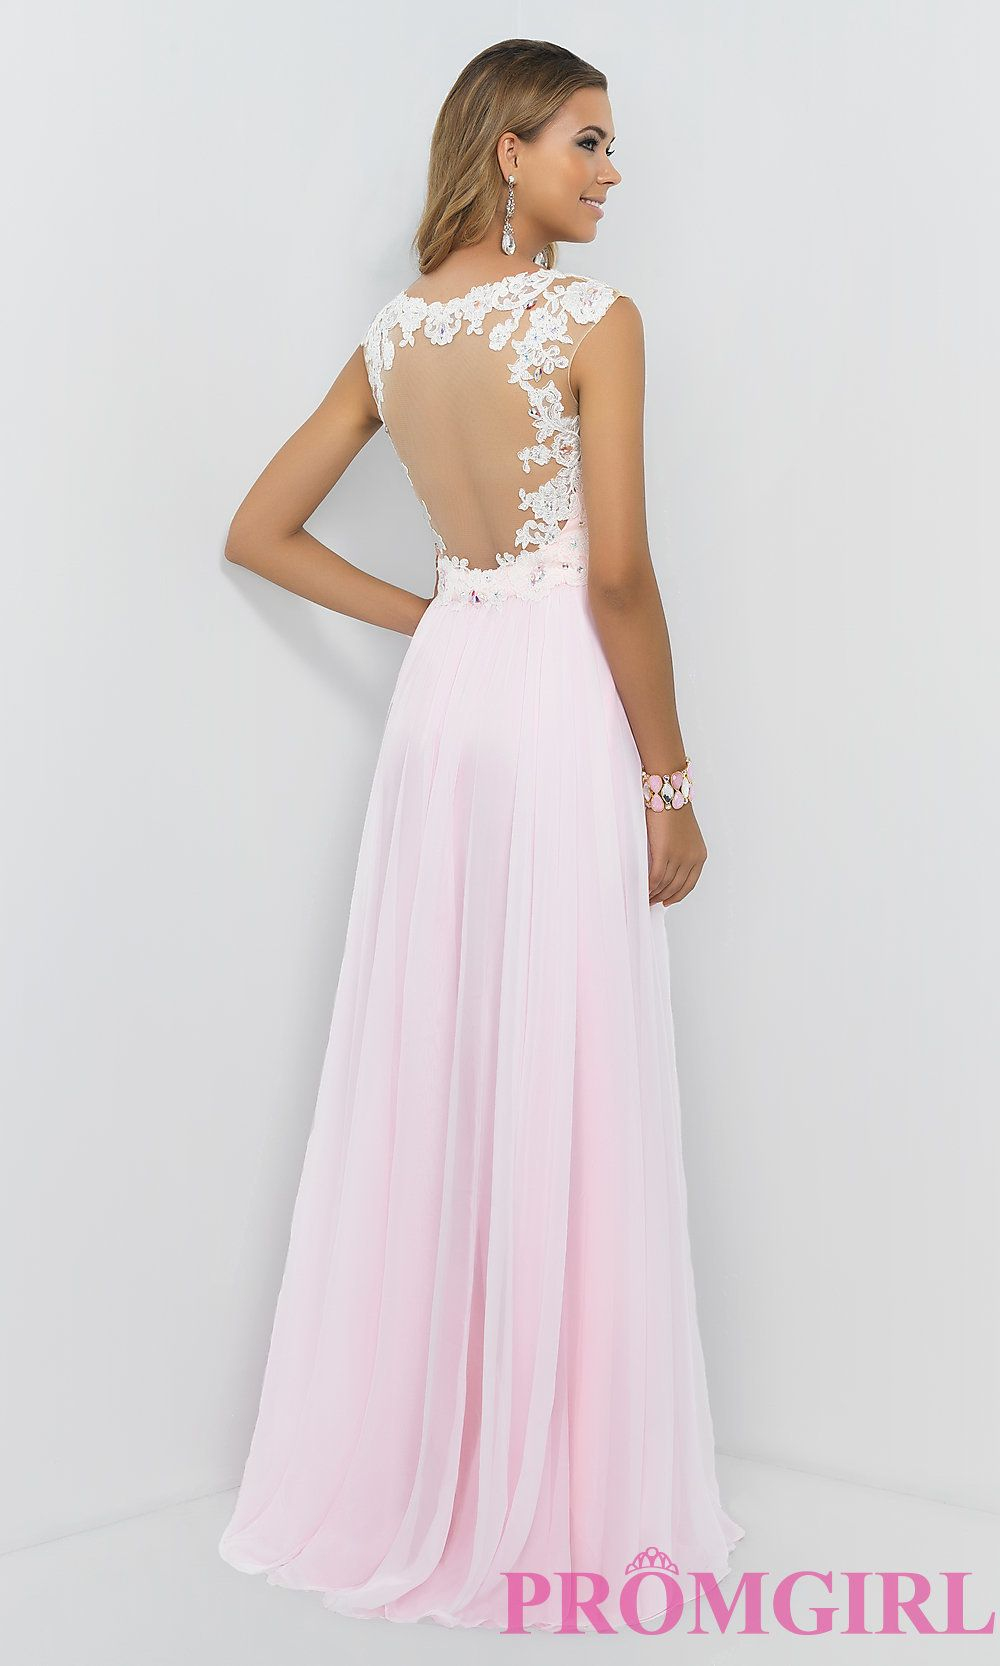 Image of Blush Cap Sleeve Pink Prom Gown 9986 Style: BL-9986 Back ...